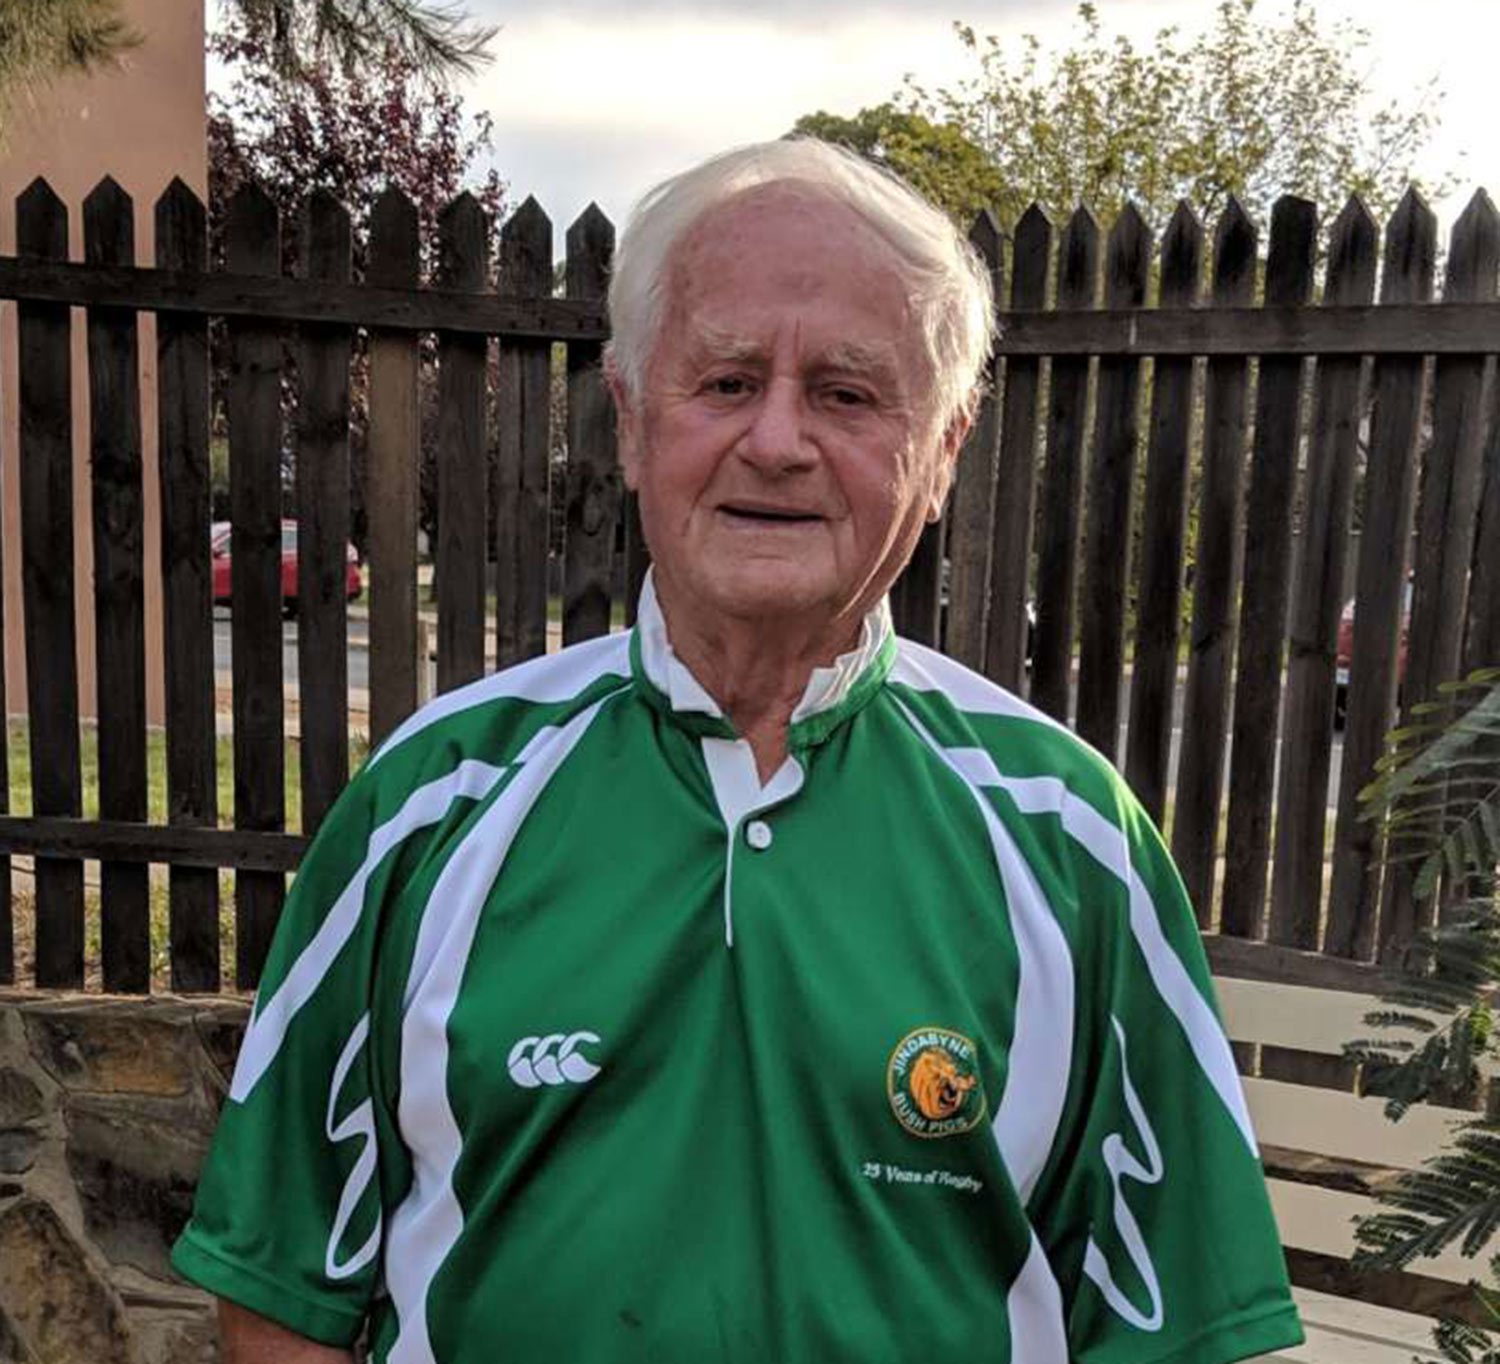 Harry Cummins, 83, from Dundrum came to Australia more than 50 years ago and lives in the Snowy Mountains area. He is one of the subjects of Lucky Country.